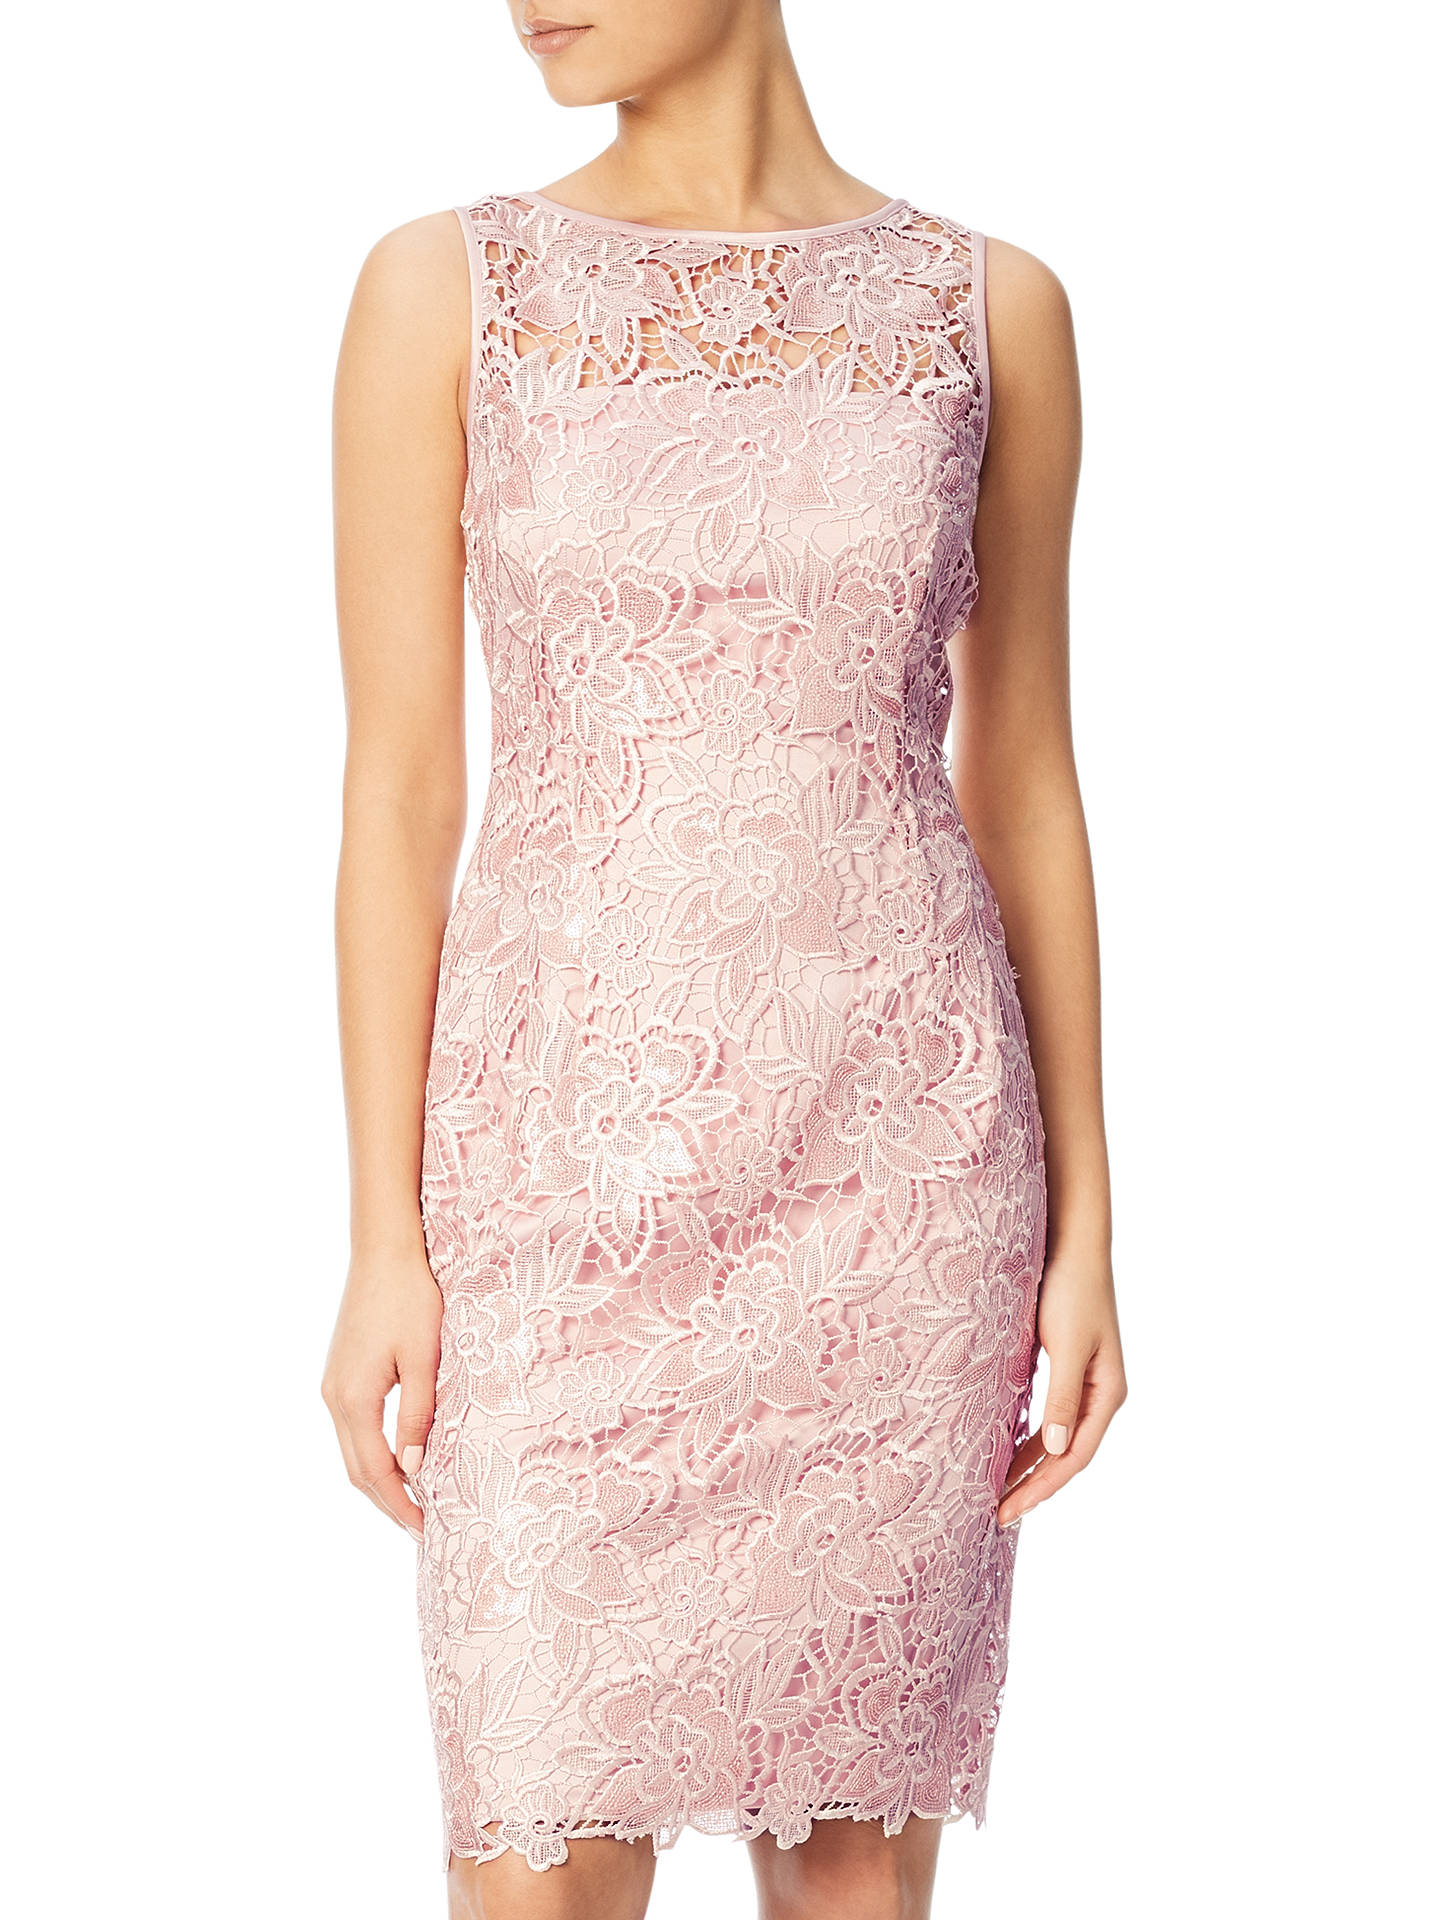 b8b91d44ad85 Buy Adrianna Papell Sequin Guipure Lace Sheath Dress, Blush, 8 Online at  johnlewis.